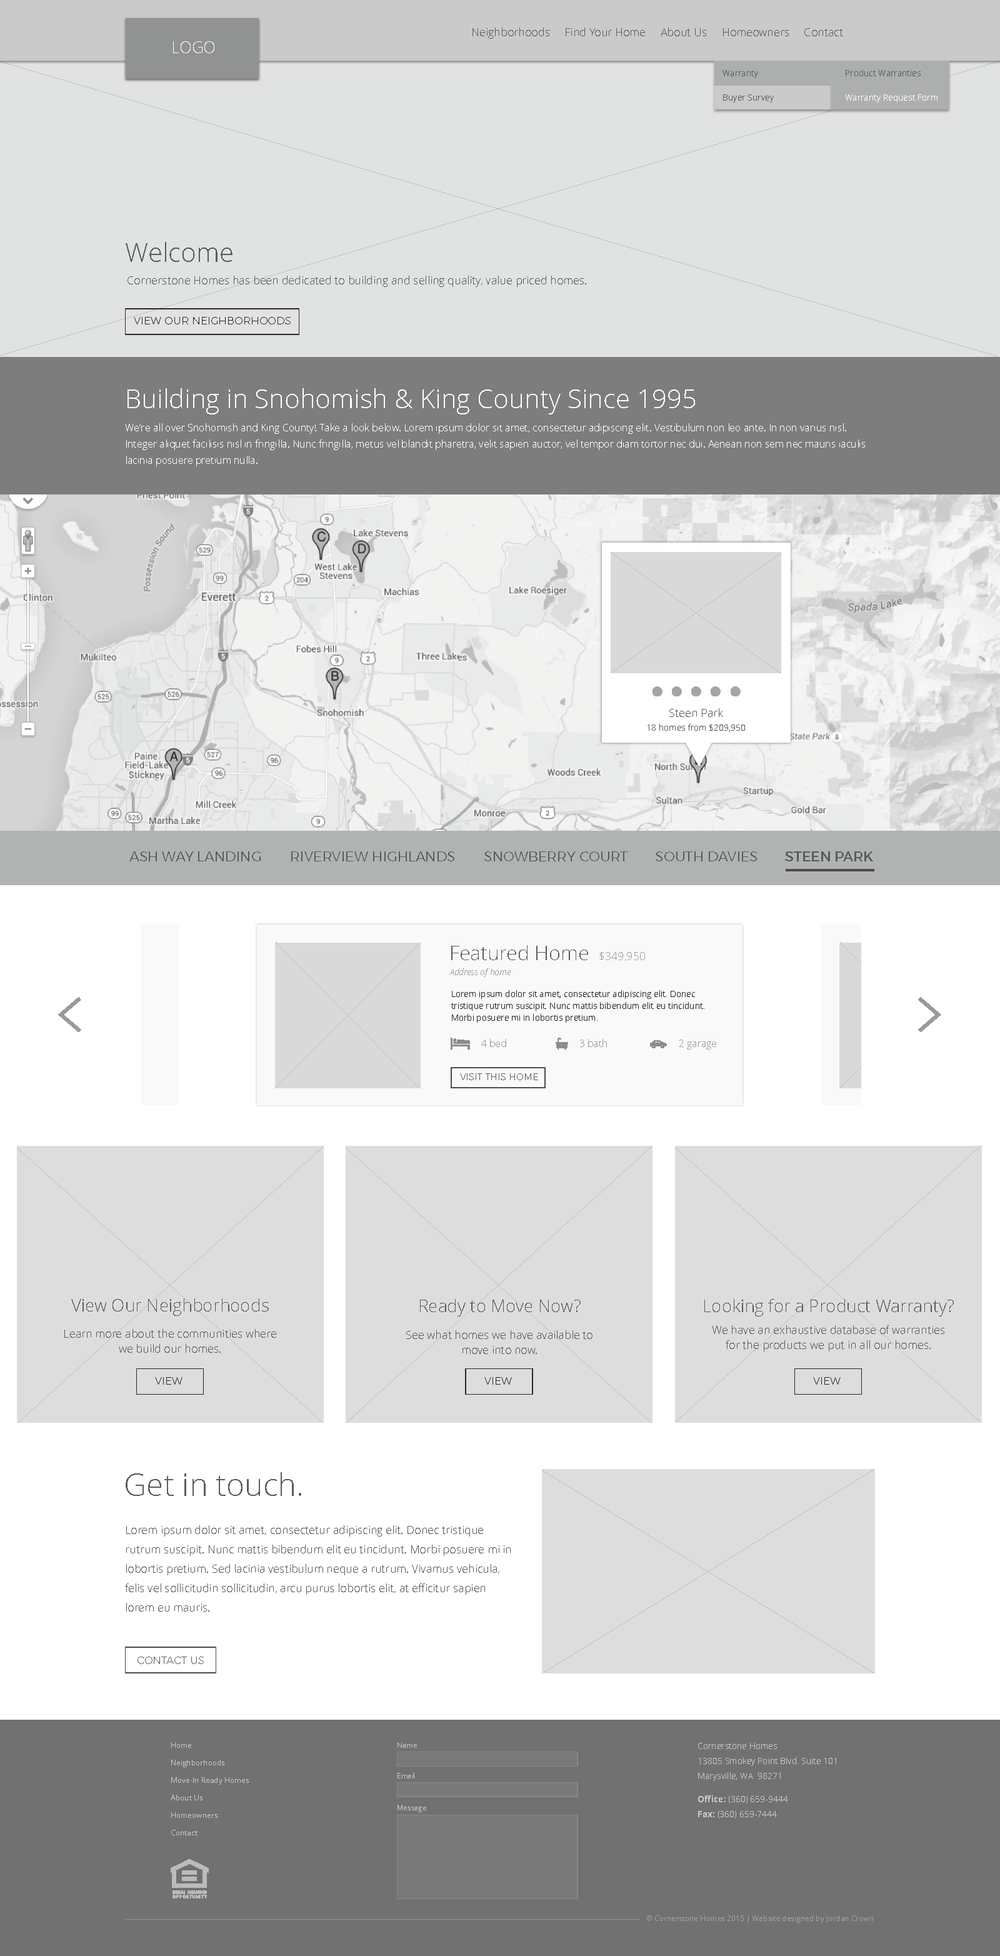 CornerstoneHomeWireframes_Page_01.png